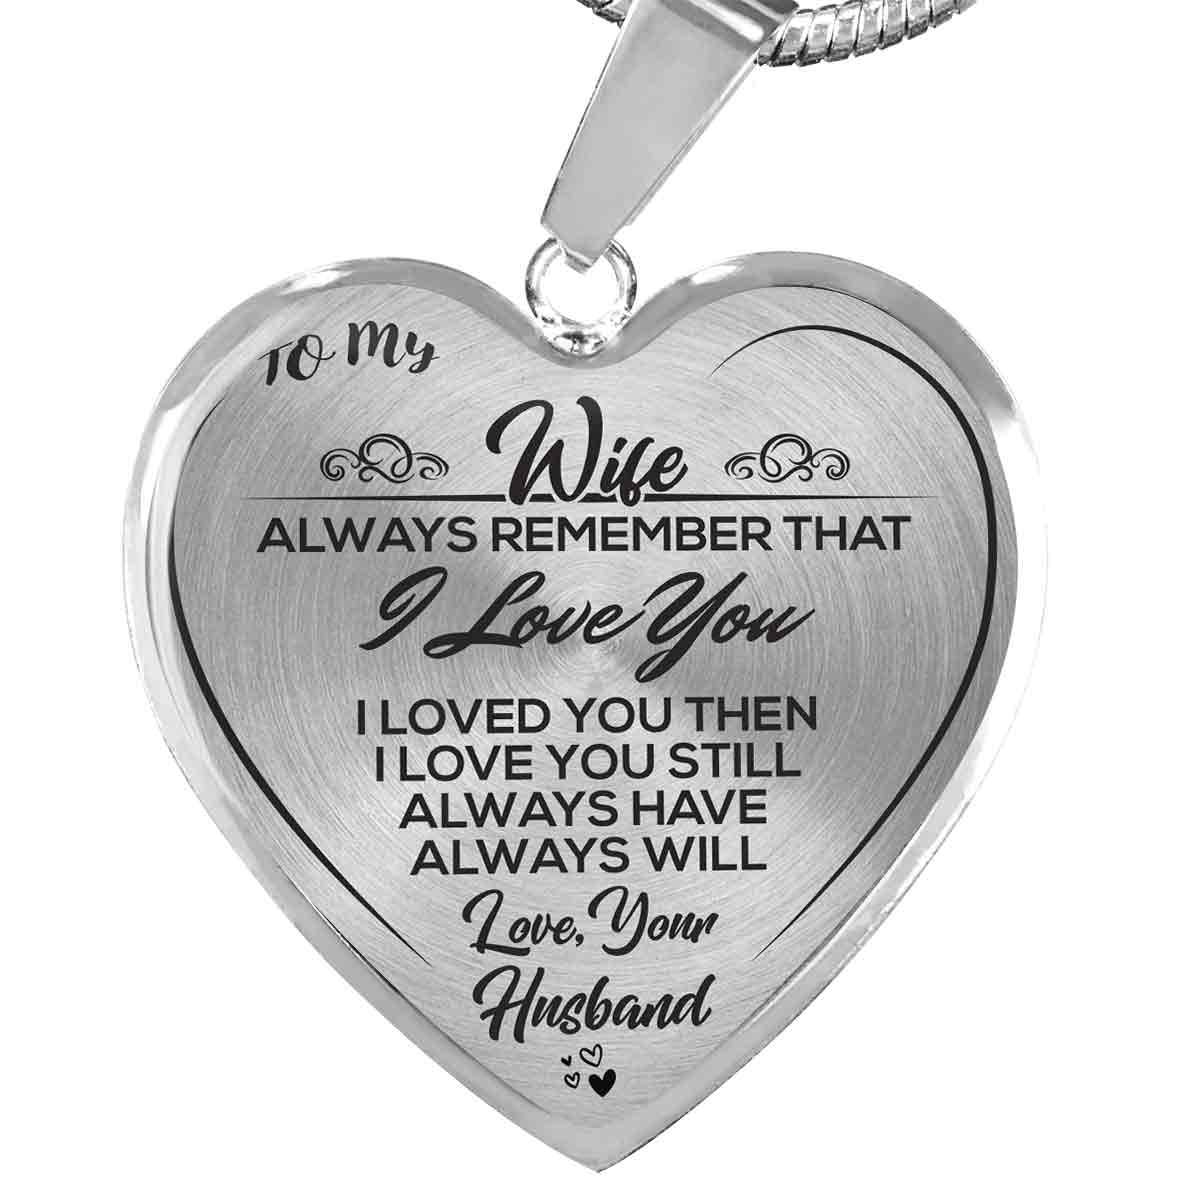 To My Wife - Love, Your Husband Luxury Heart Necklace